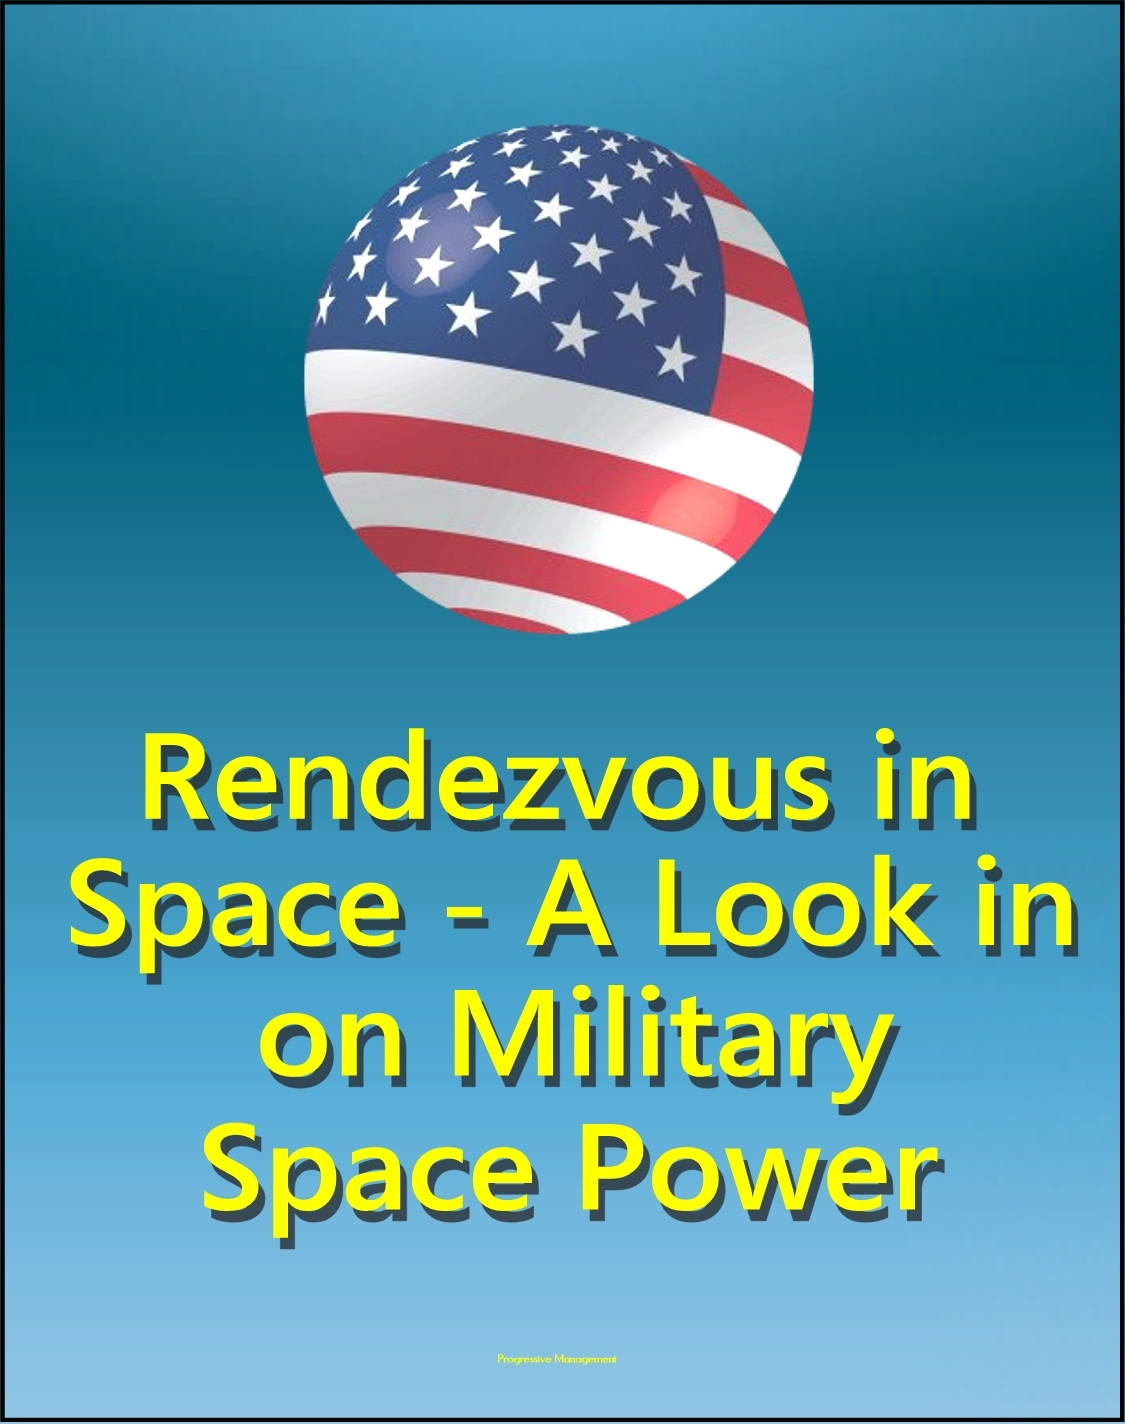 Rendezvous In Space: A Look In on Military Space Power - Effects of Starfish Prime Nuclear Explosion on Space Policy, Comparison of Space Power to Air Power By: Progressive Management